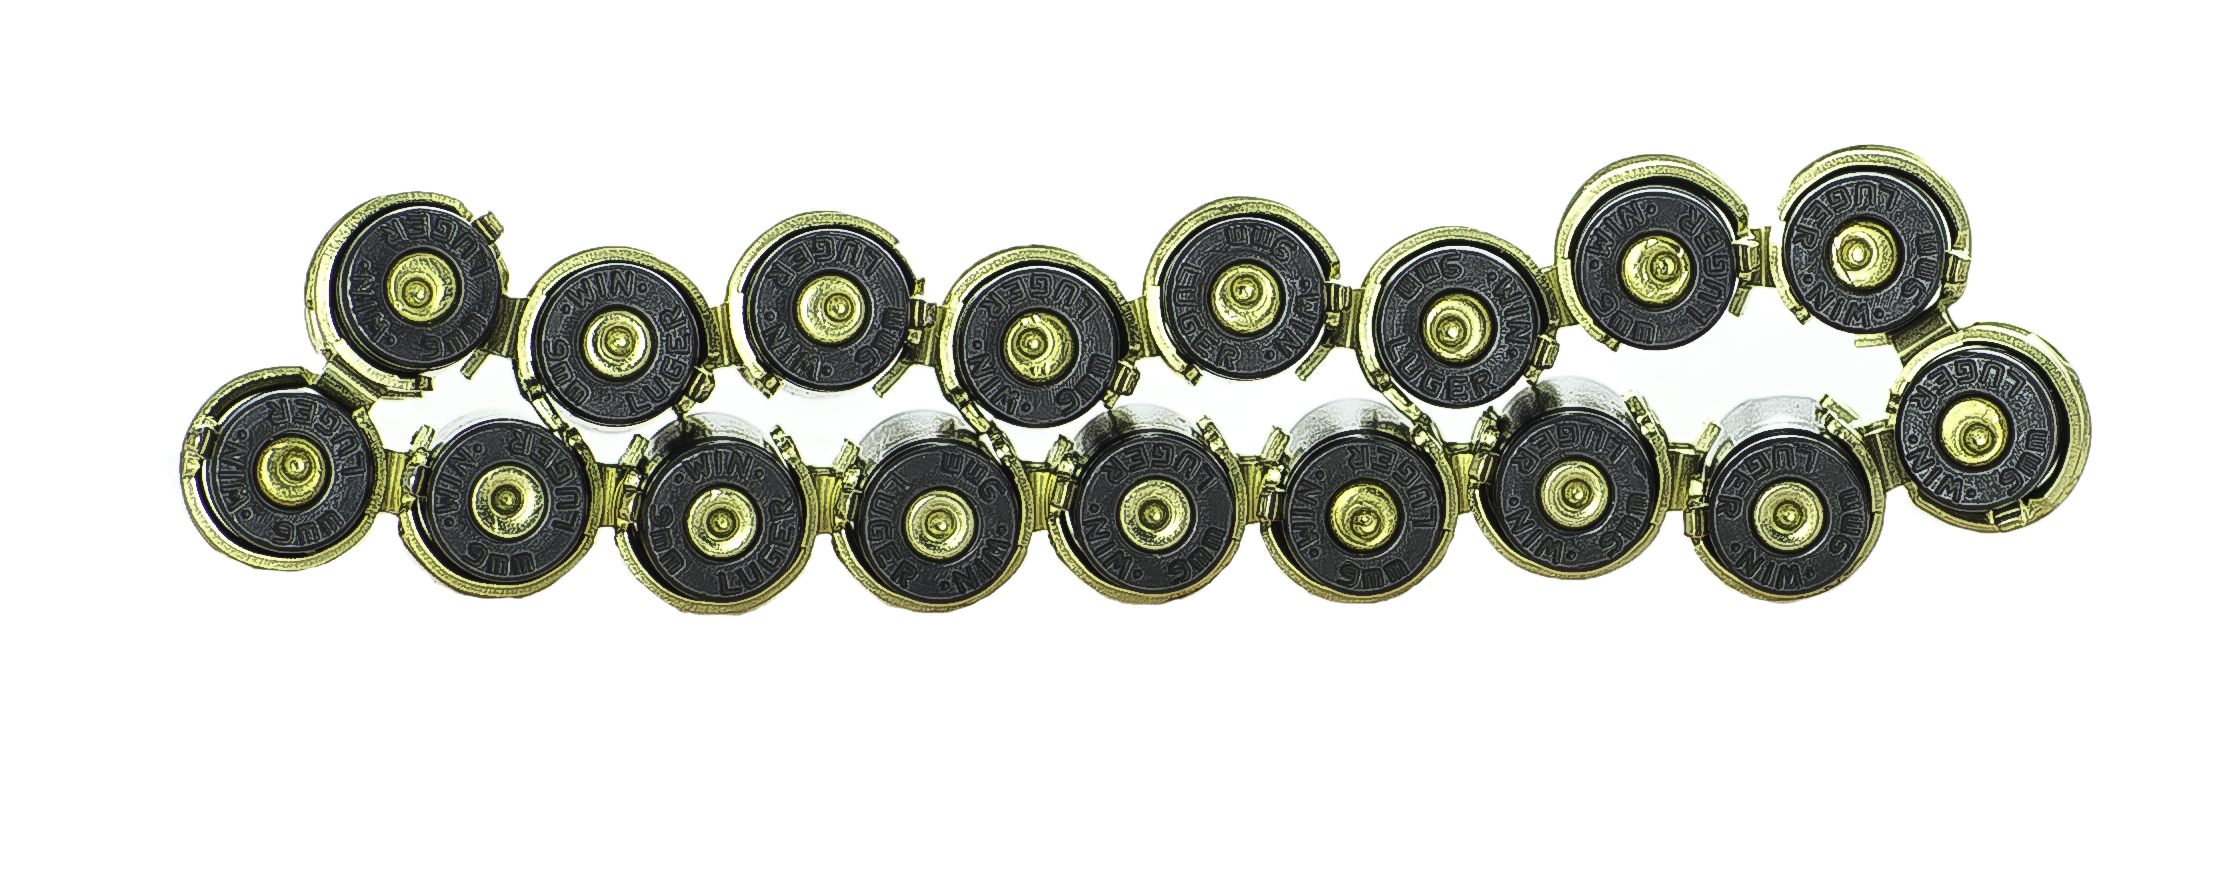 Gold on Black 9mm linked bullet bracelet with DRT lead free projectiles back